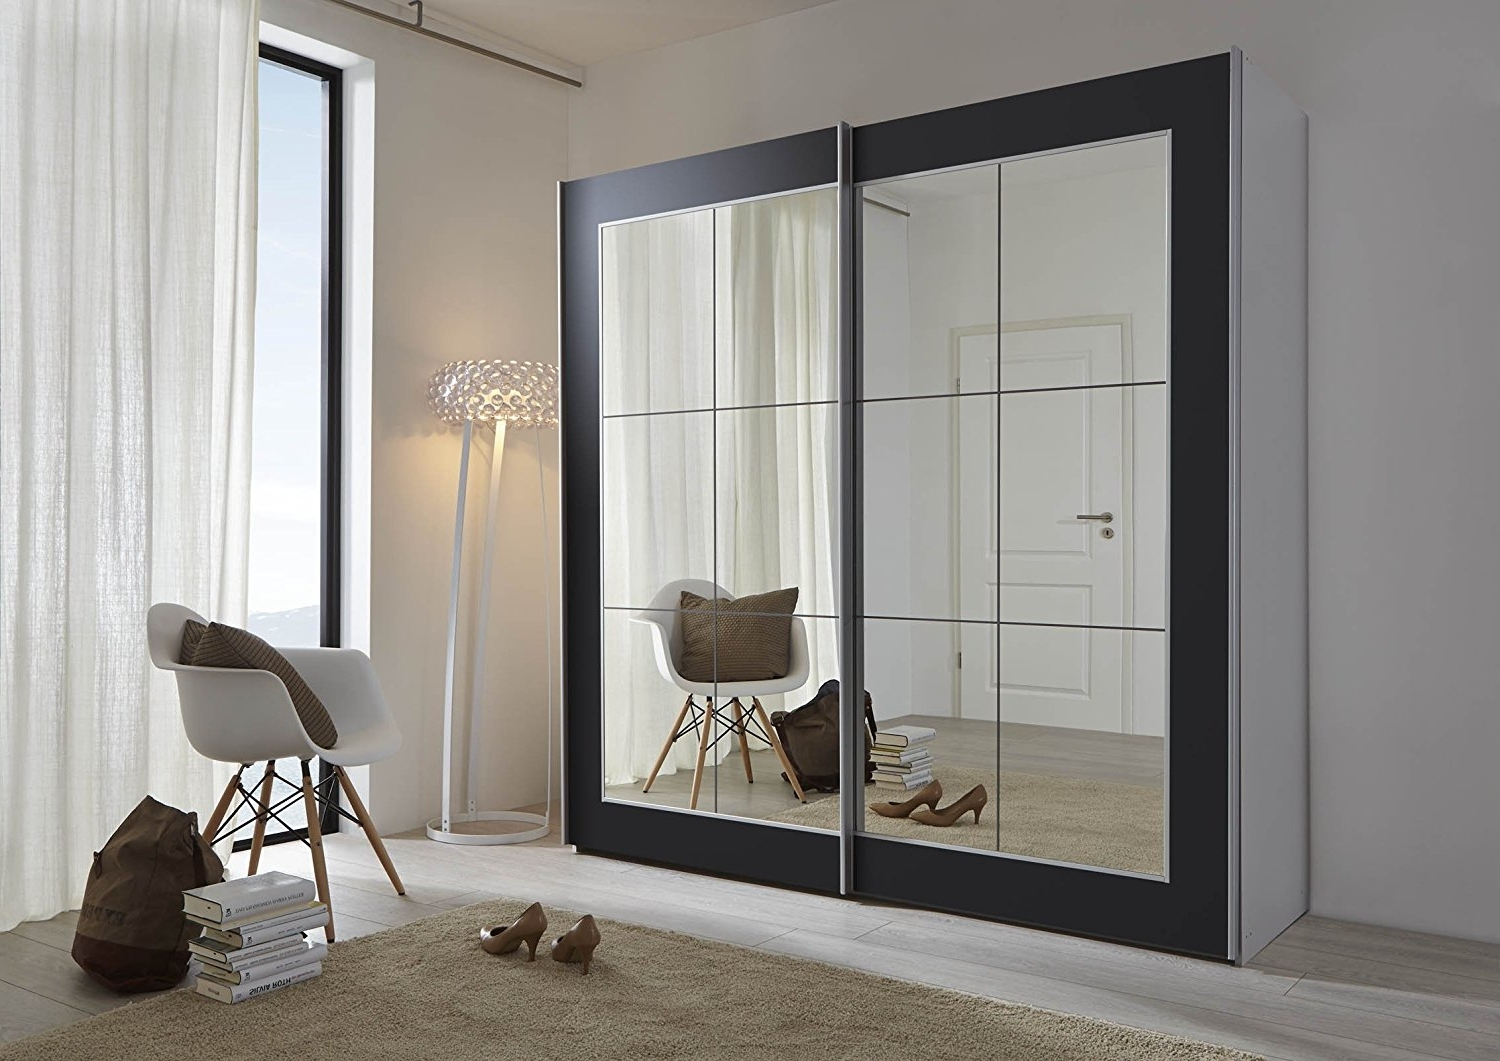 Popular Cheap Wardrobes With Mirror Intended For Schlafzimmer Lattice: Black Sliding Door Wardrobe With Mirror (View 13 of 15)